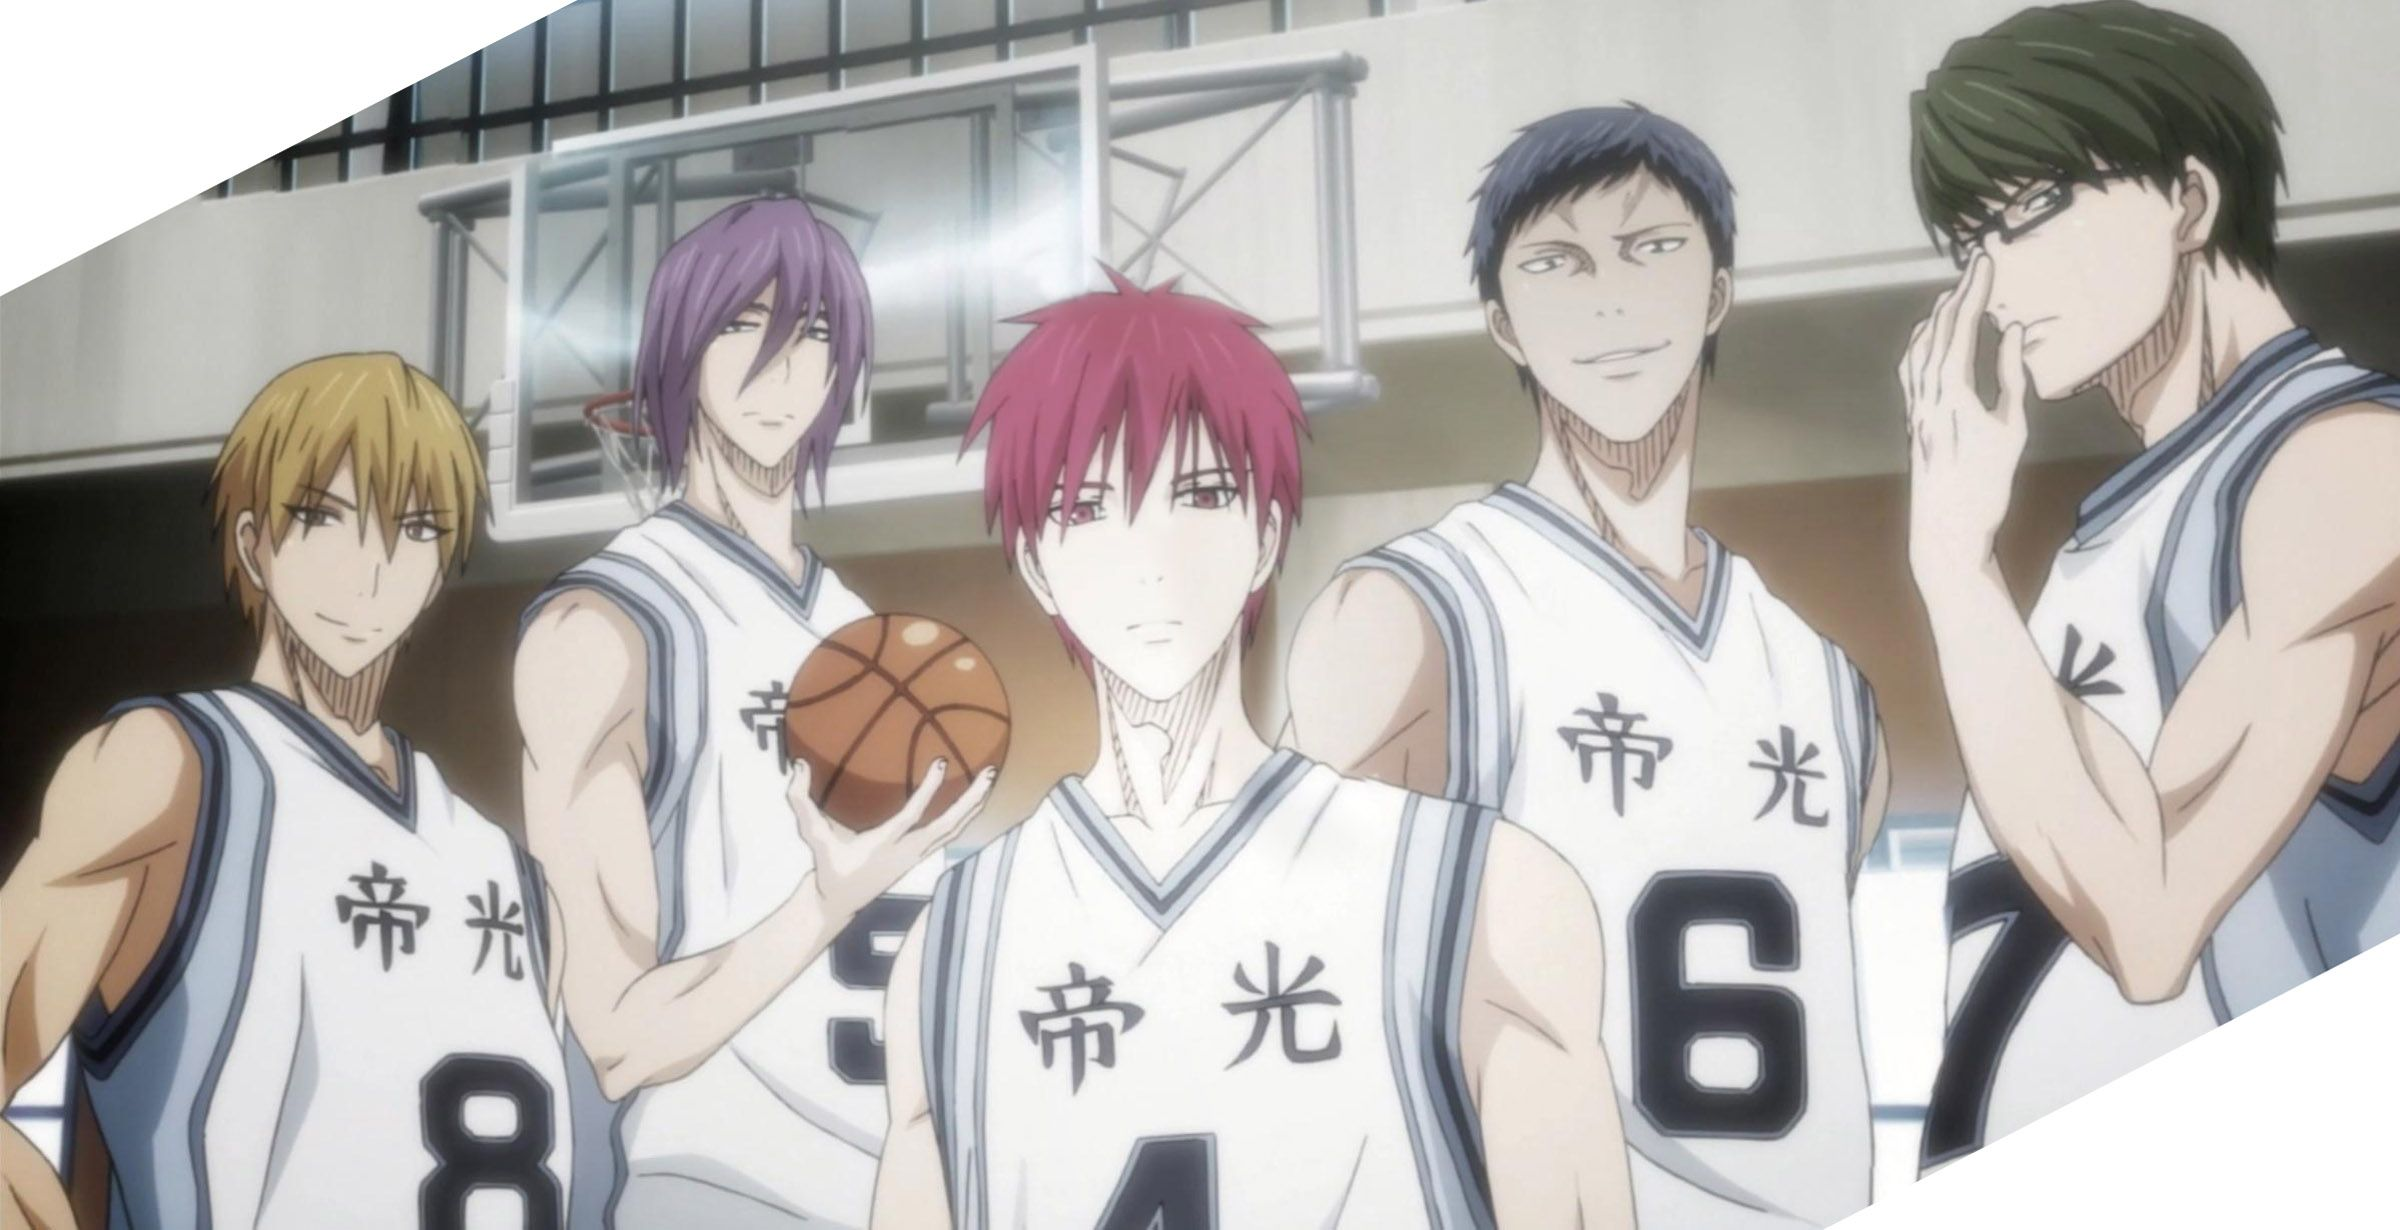 Generation of miracles anime wallpaper pinterest kuroko anime find this pin and more on anime wallpaper voltagebd Choice Image